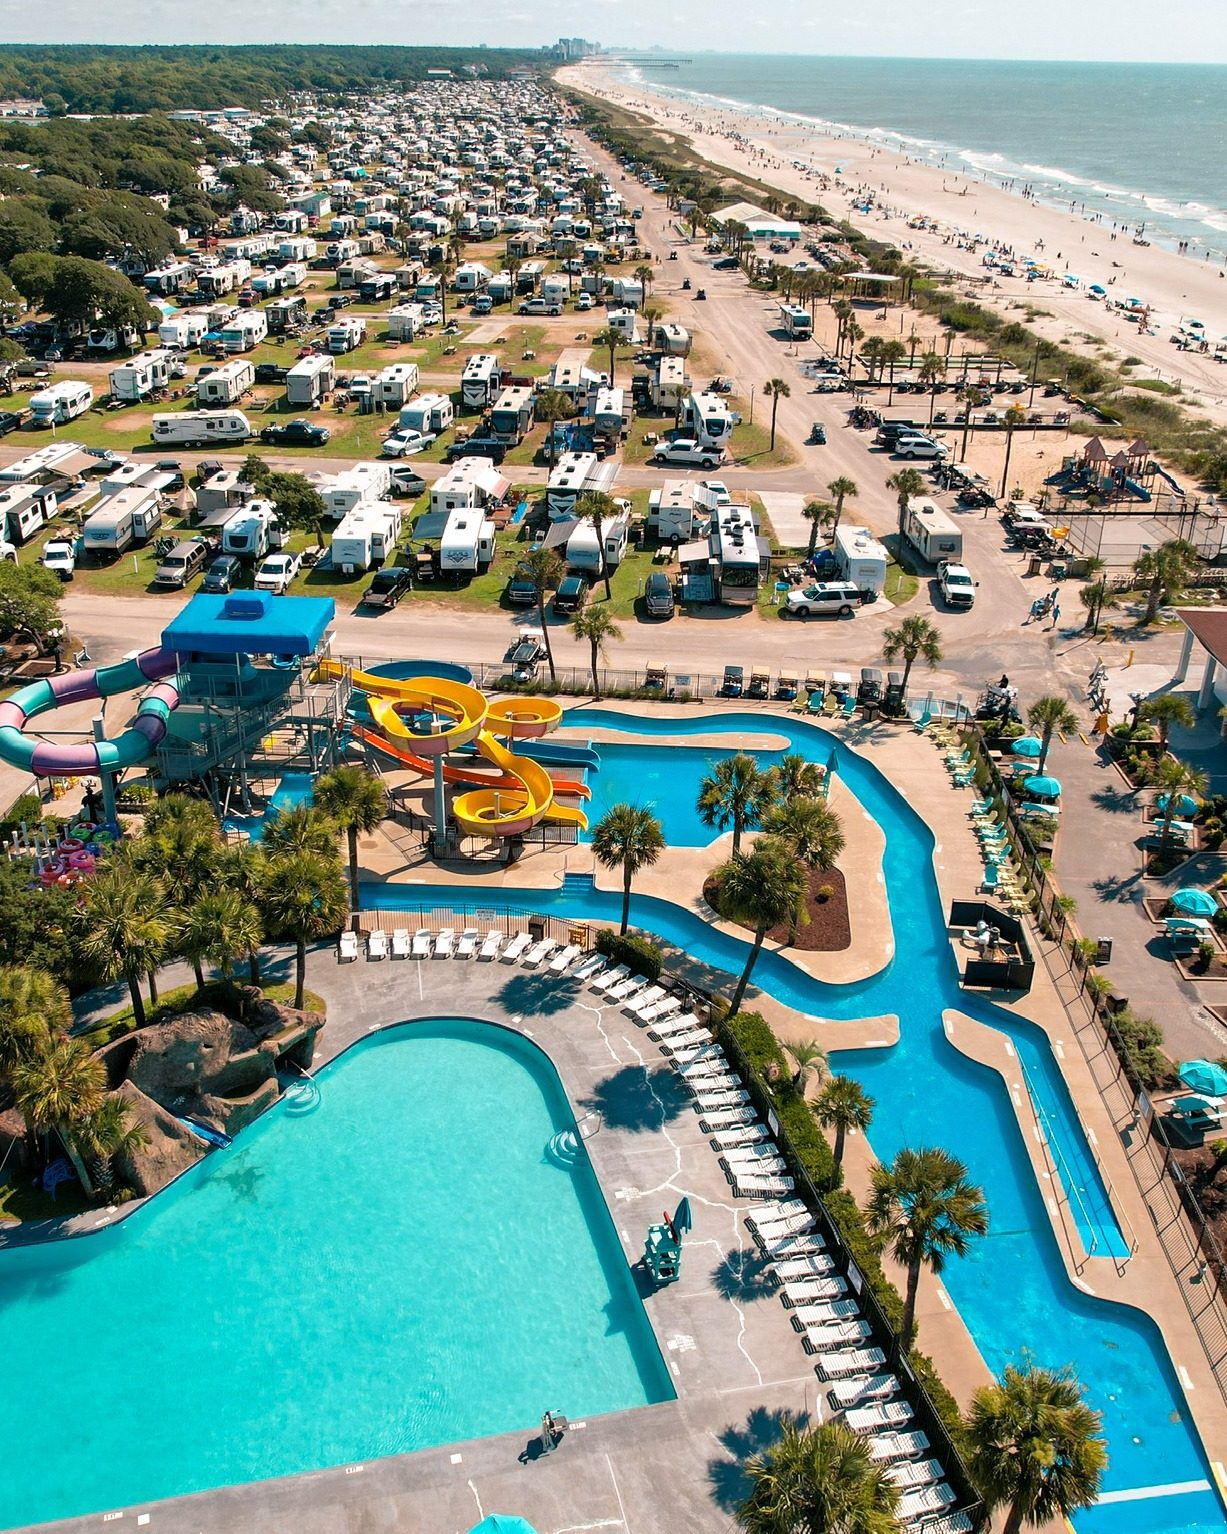 Aerial shot of RVs parked next to a beach shore with pool and lazy river.